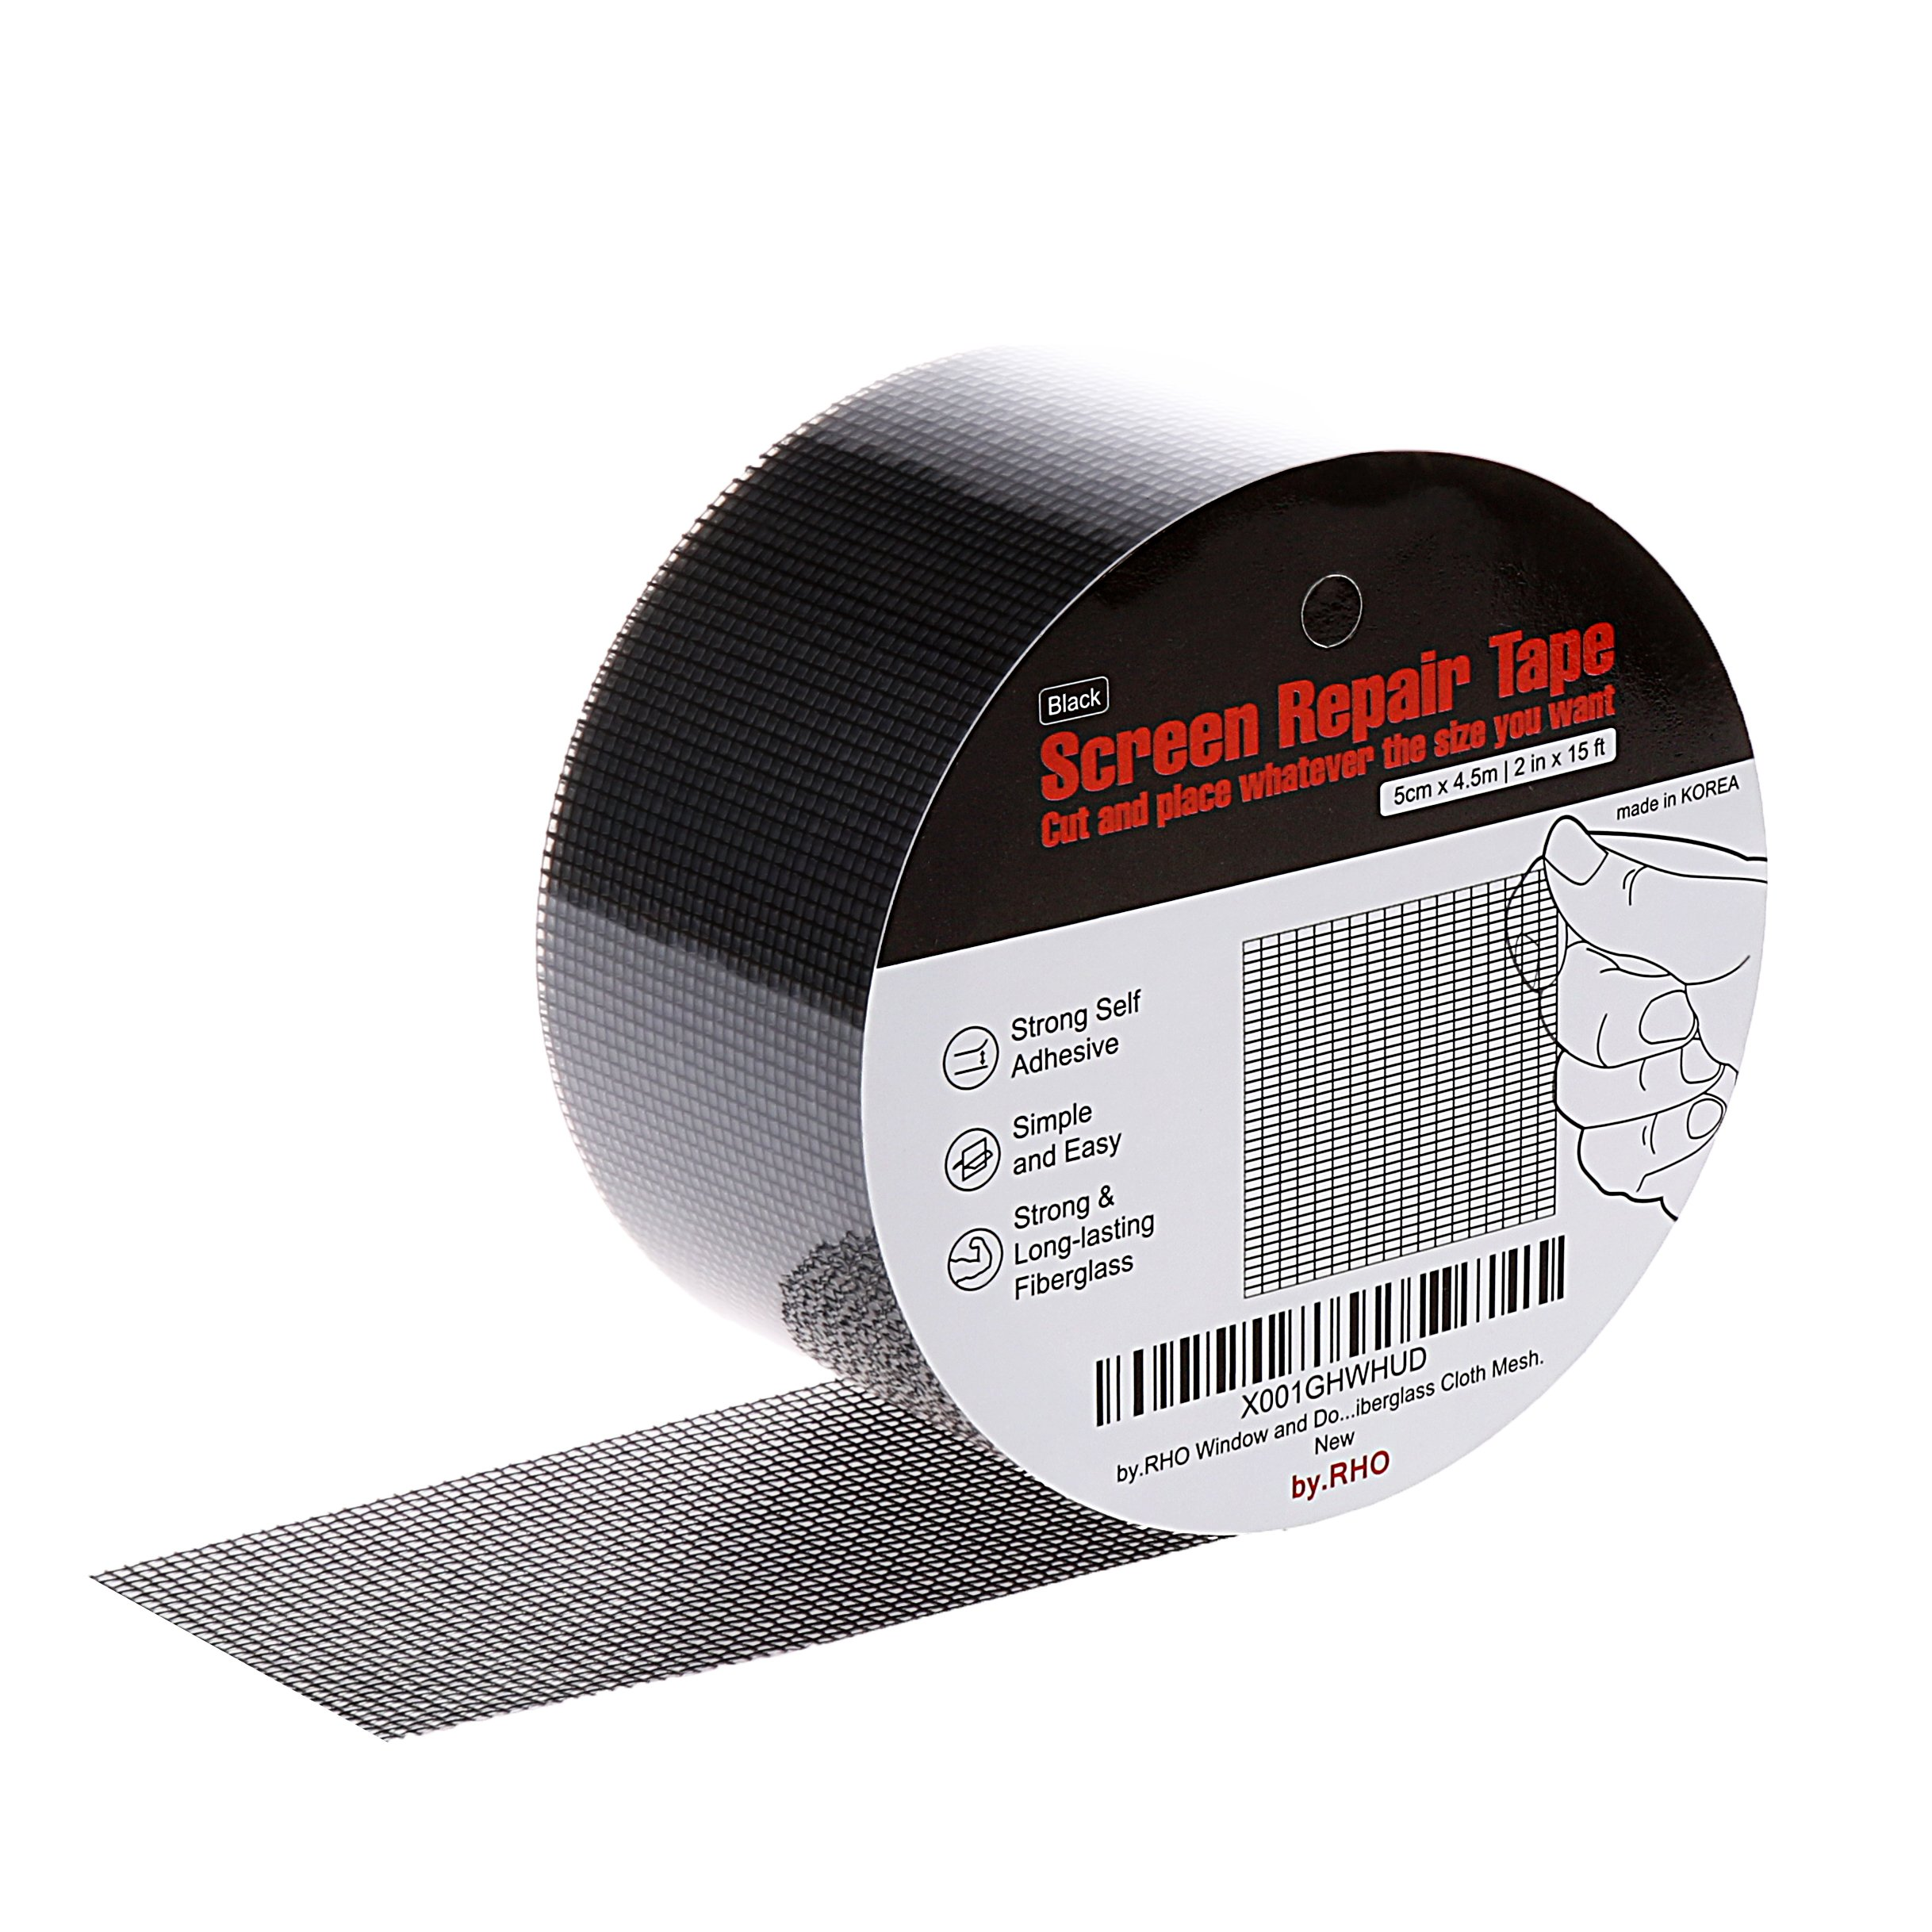 by.RHO Screen Repair kit. Black, 15FT. 3-Layer Strong Adhesive & Waterproof. Window and Door Screen. Ideal for Covering up Holes and Tears Instantly -Prevents Intruding Insects Screen Repair Tape.